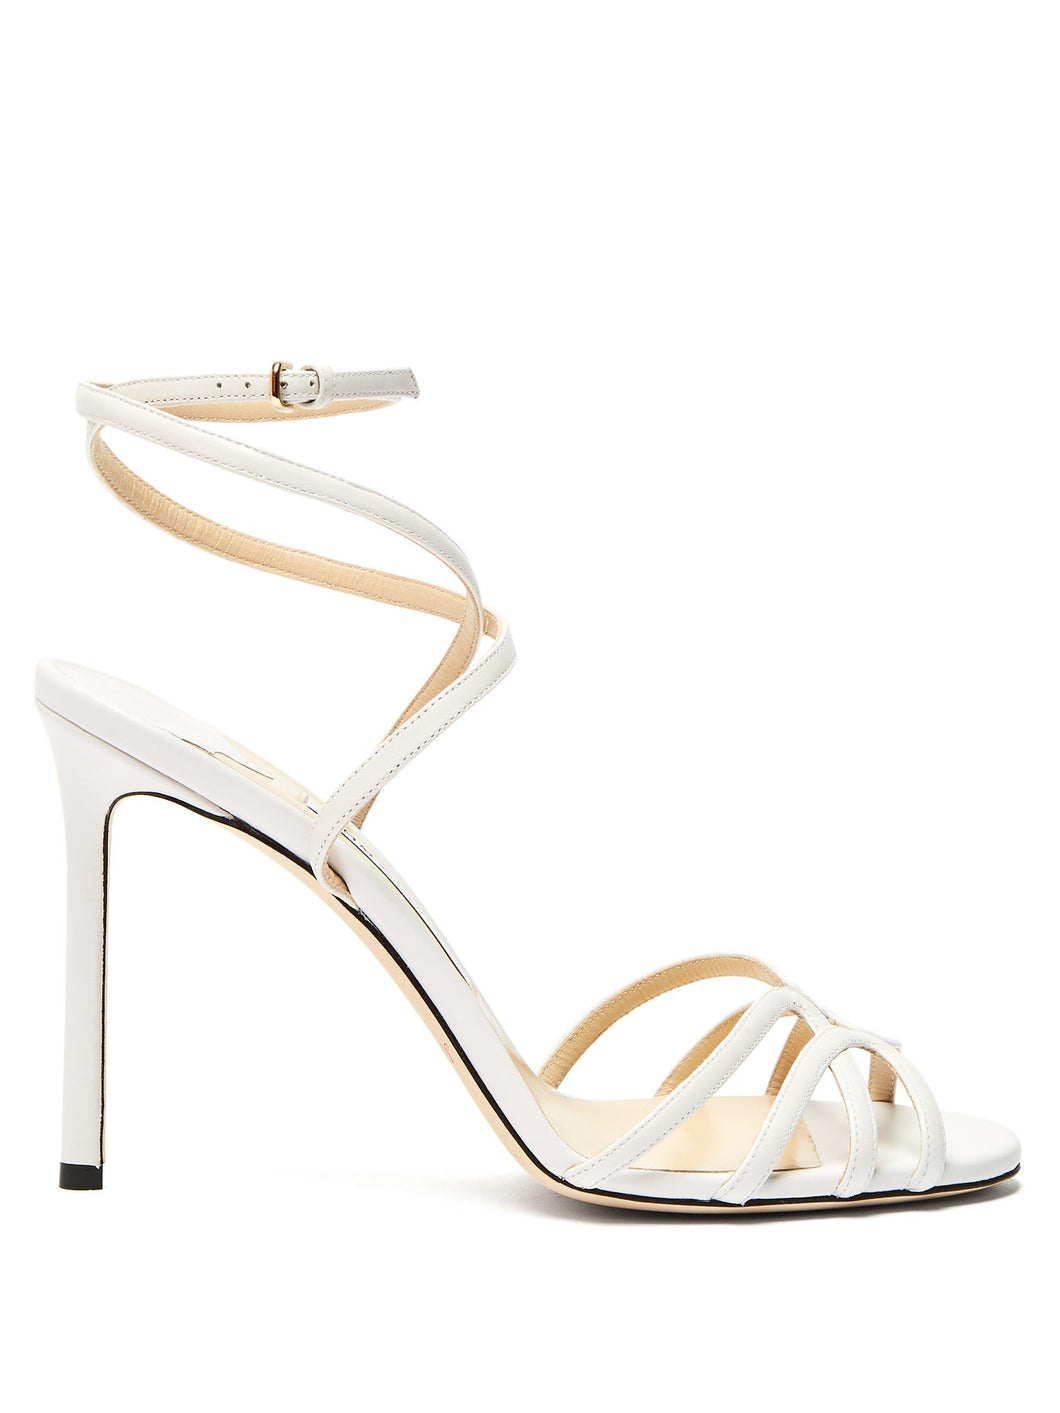 Mimi 100 wrap-around leather sandals